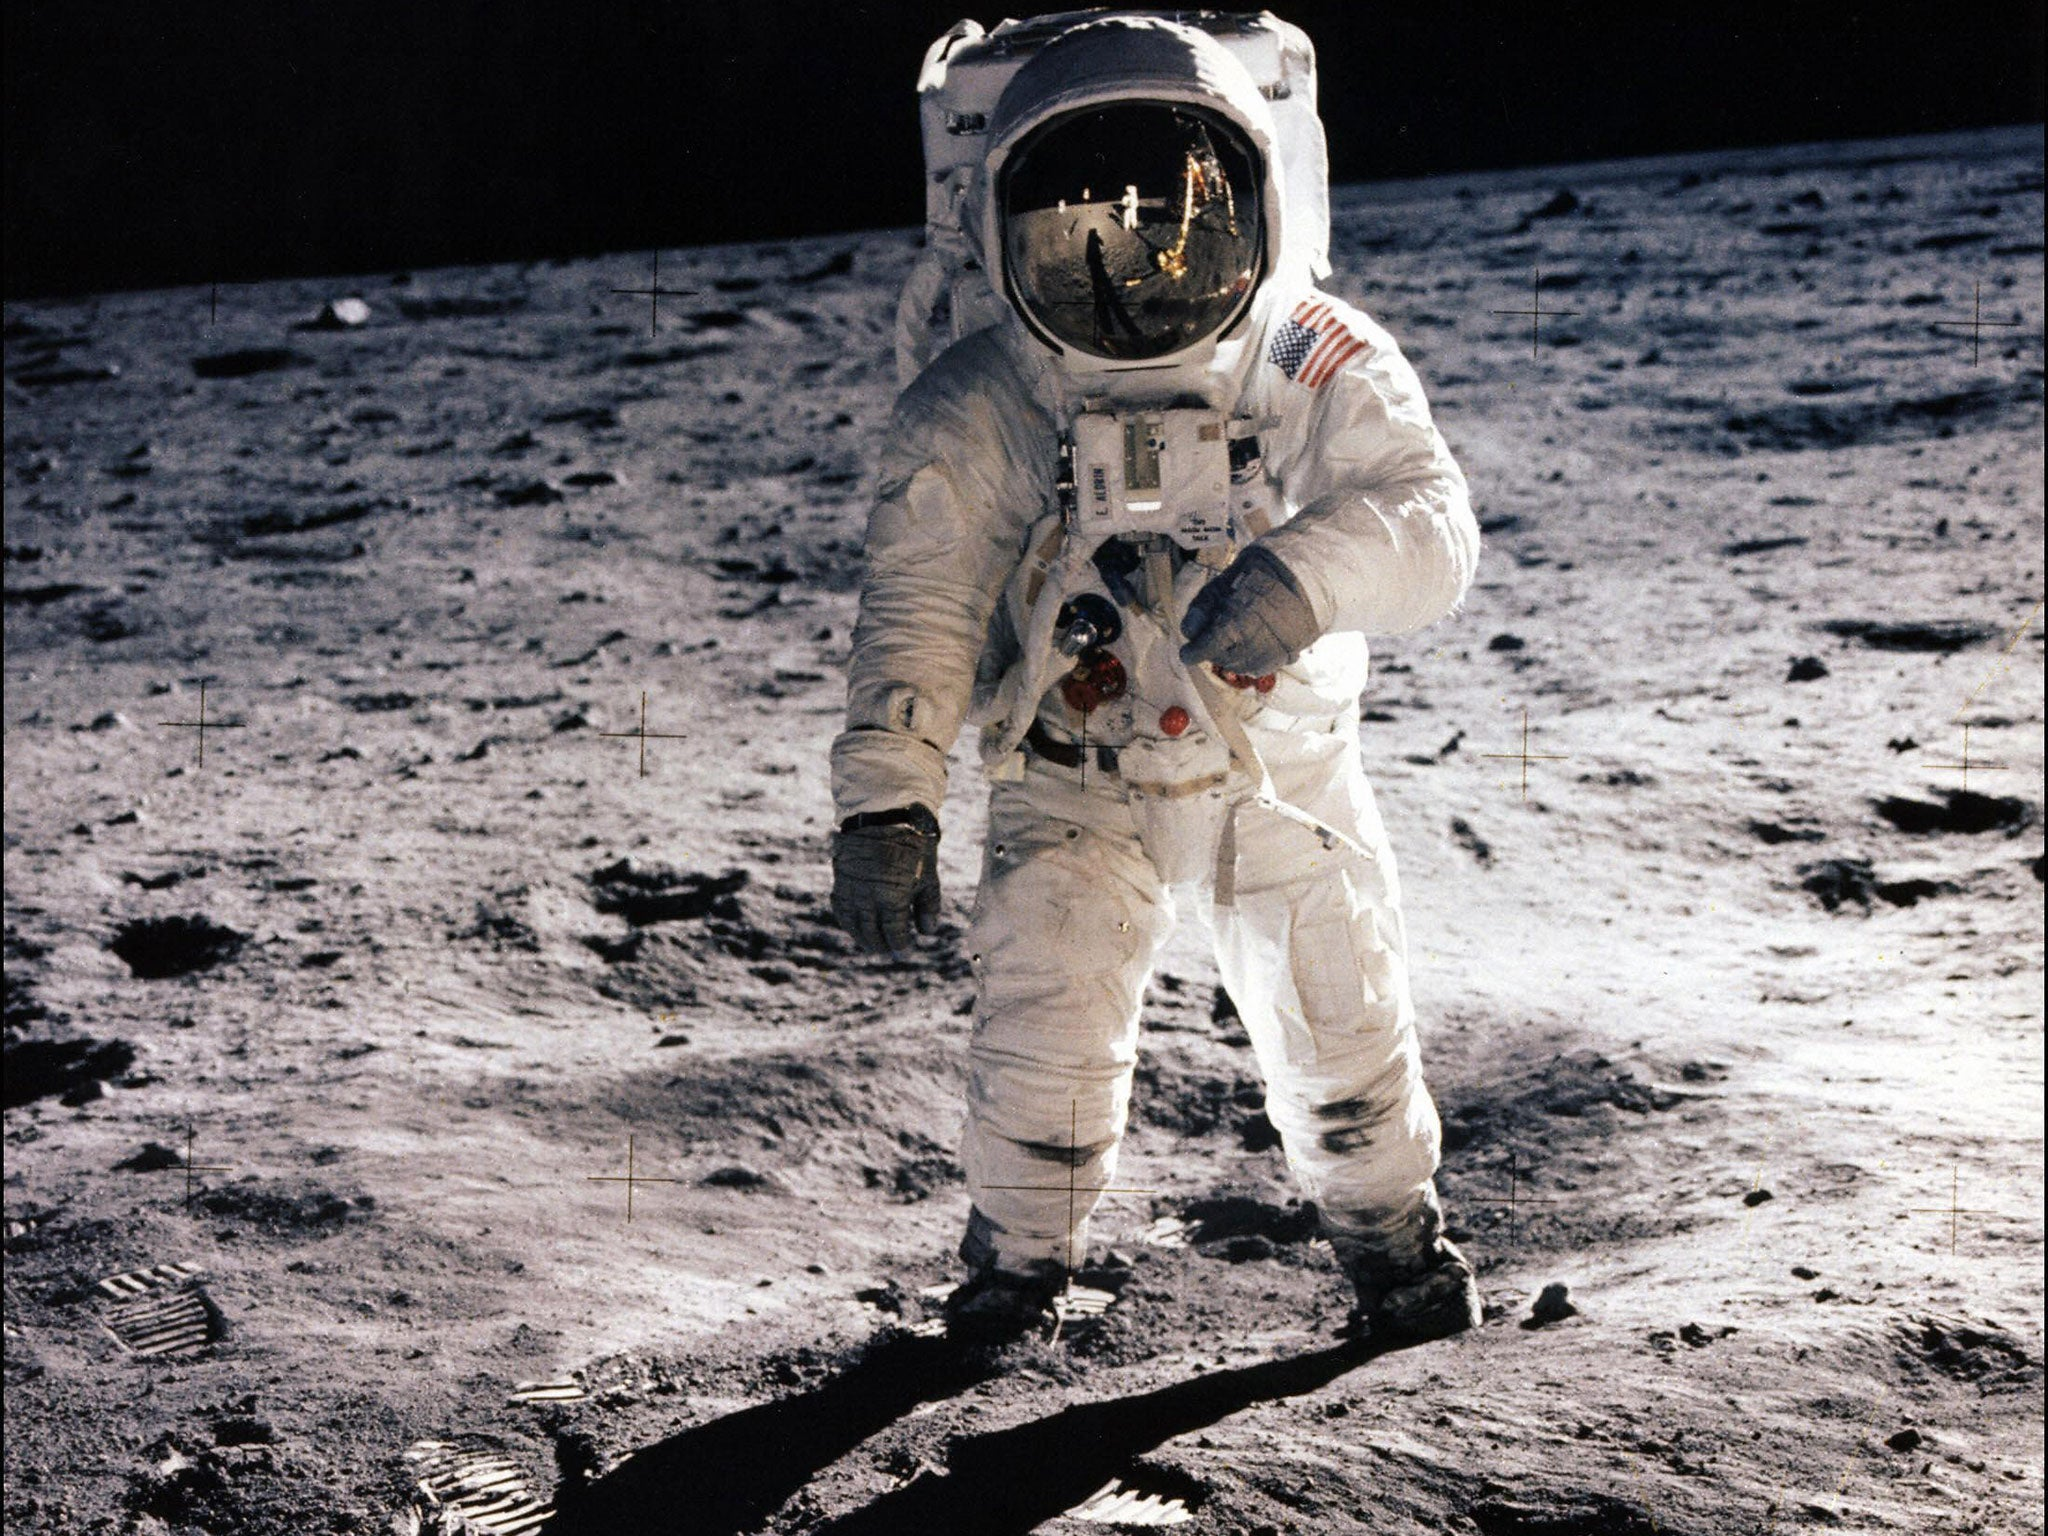 Faked Moon Landing Would Have Been Exposed In Four Years Scientist Concludes